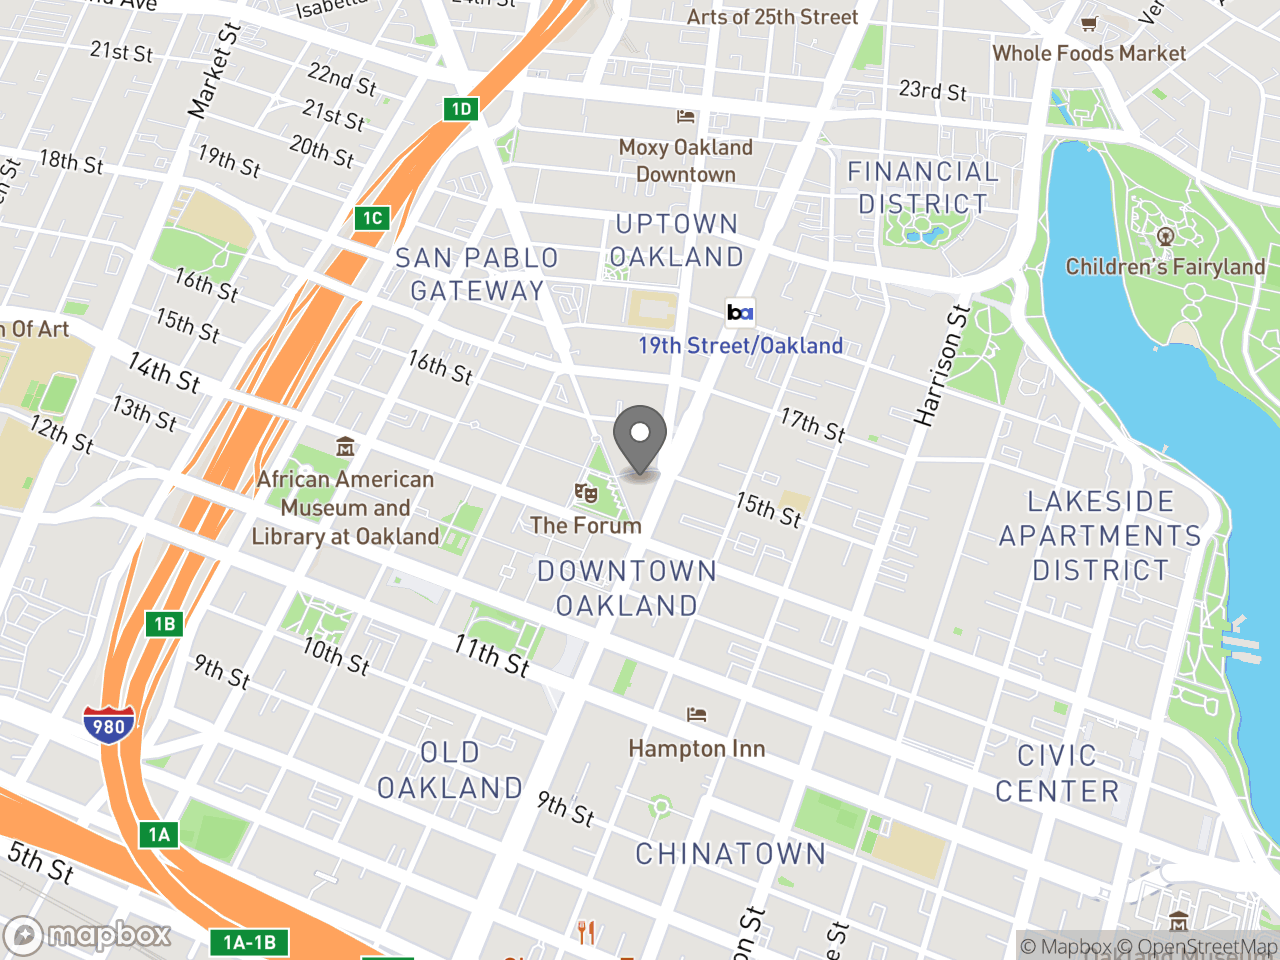 Map image for Information Technology, located at 150 Frank H Ogawa Plaza in Oakland, CA 94612